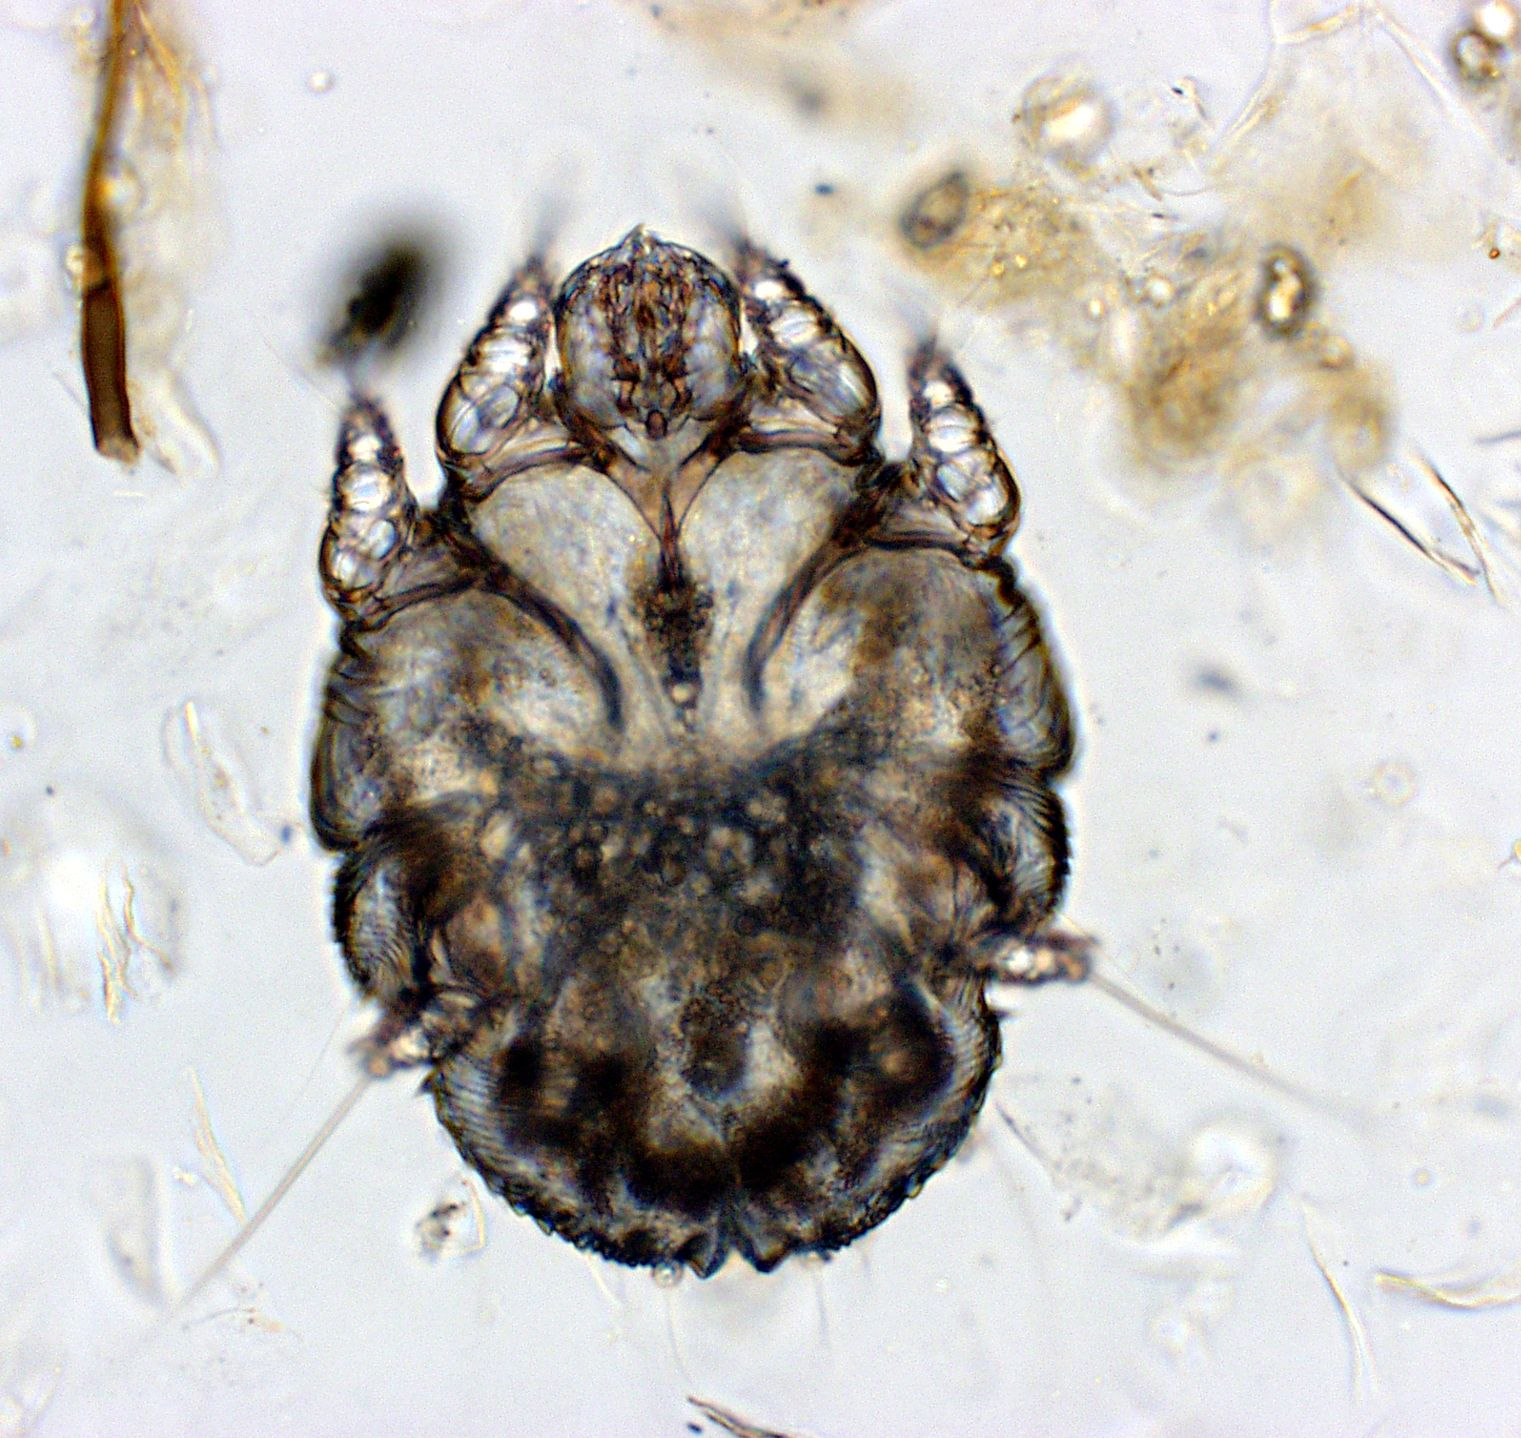 Scabies Sarcoptes Scabiei A Tiny Mite And Usually Not